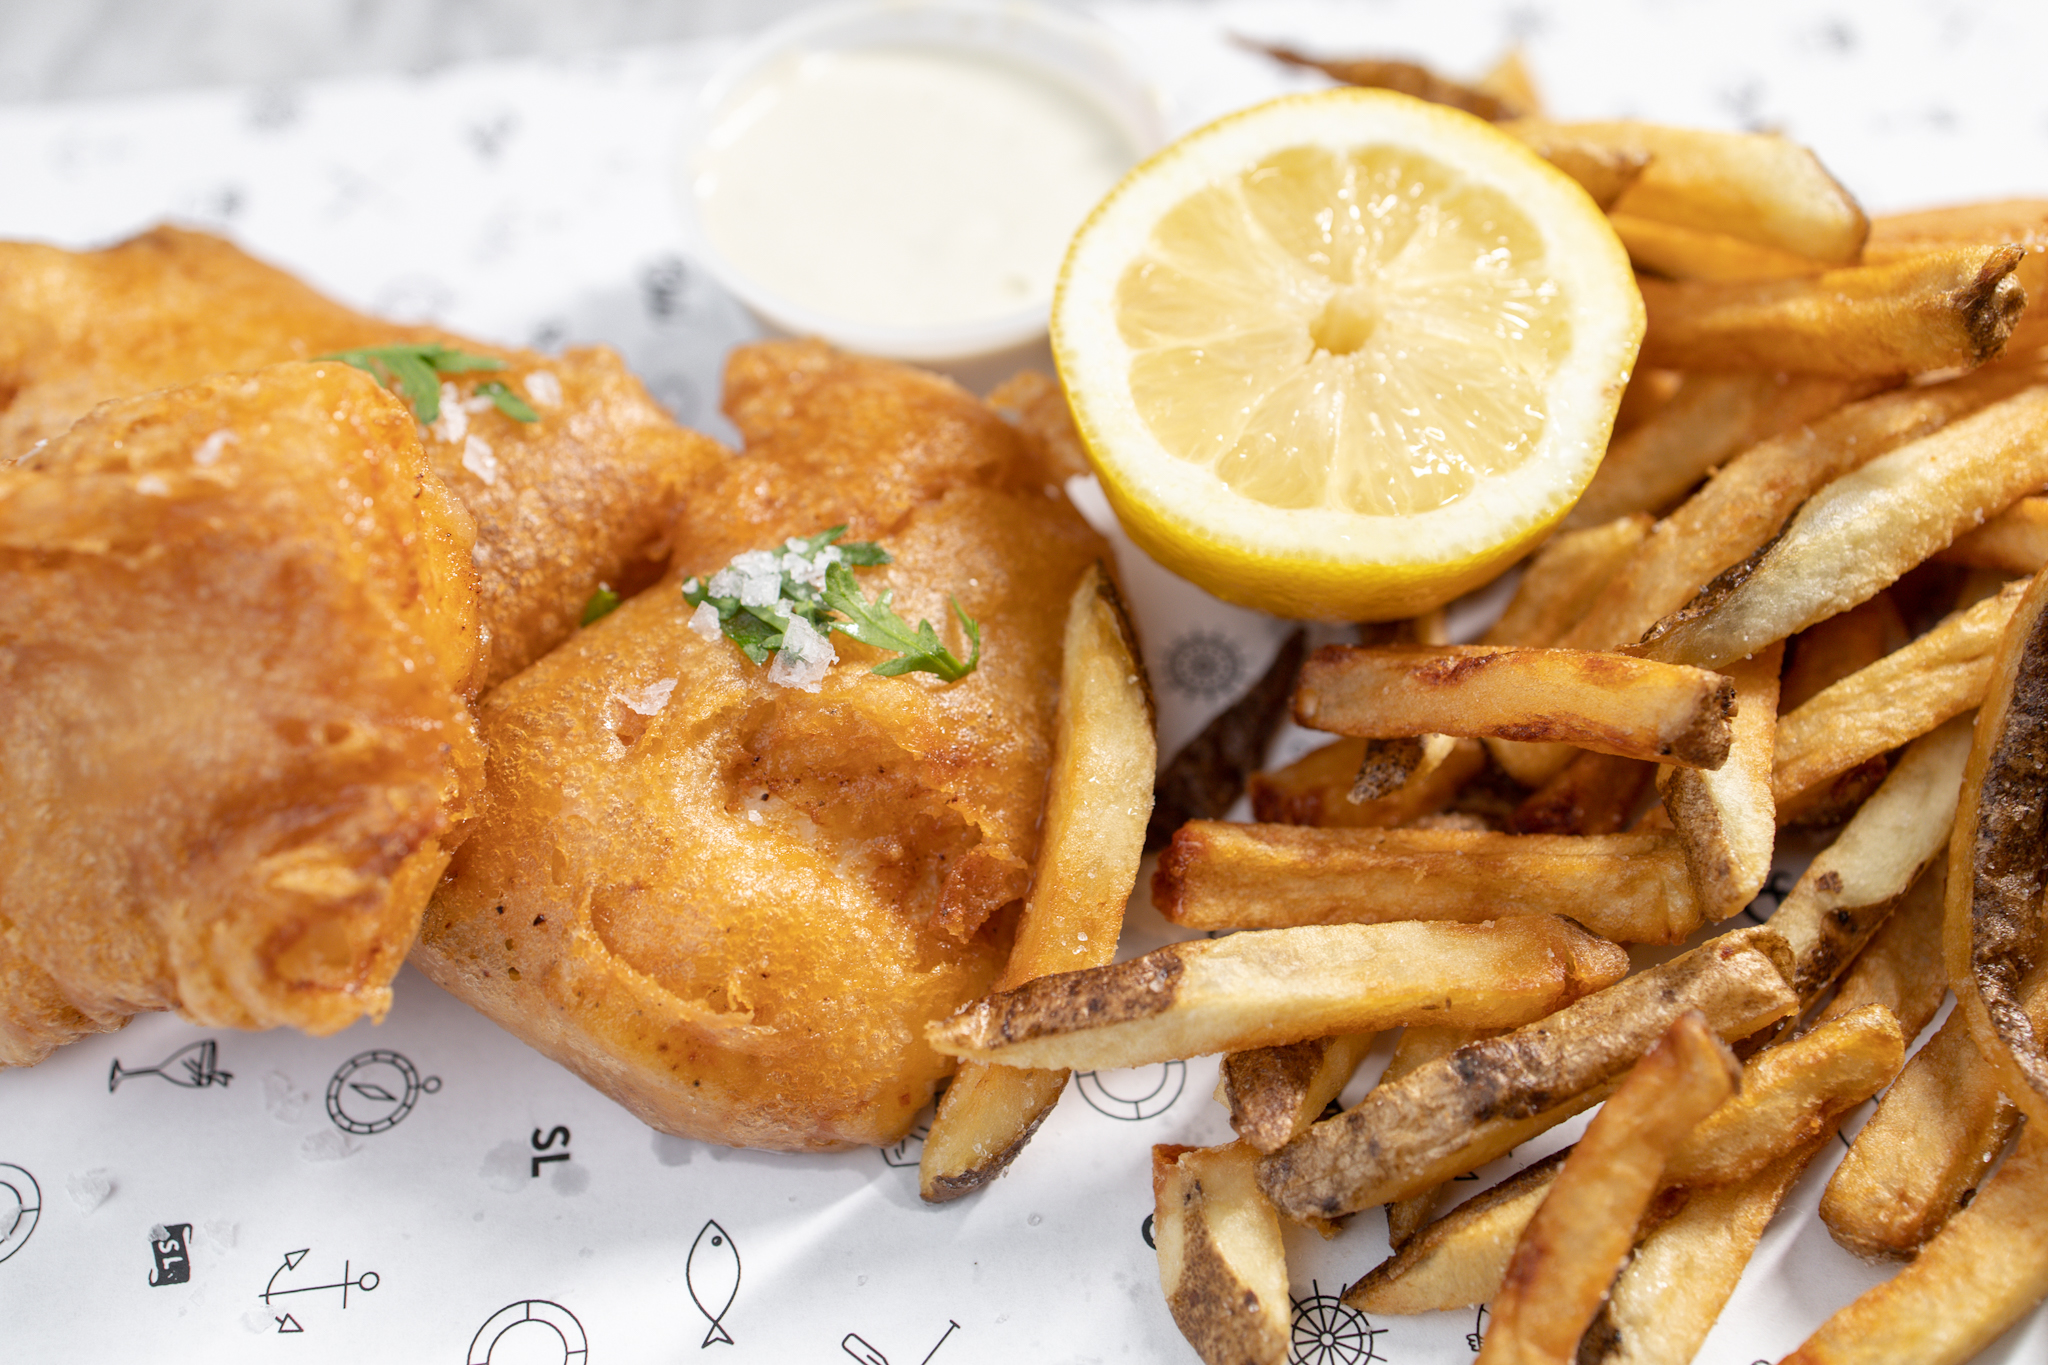 A plate of Oui Chippy's fish and chips